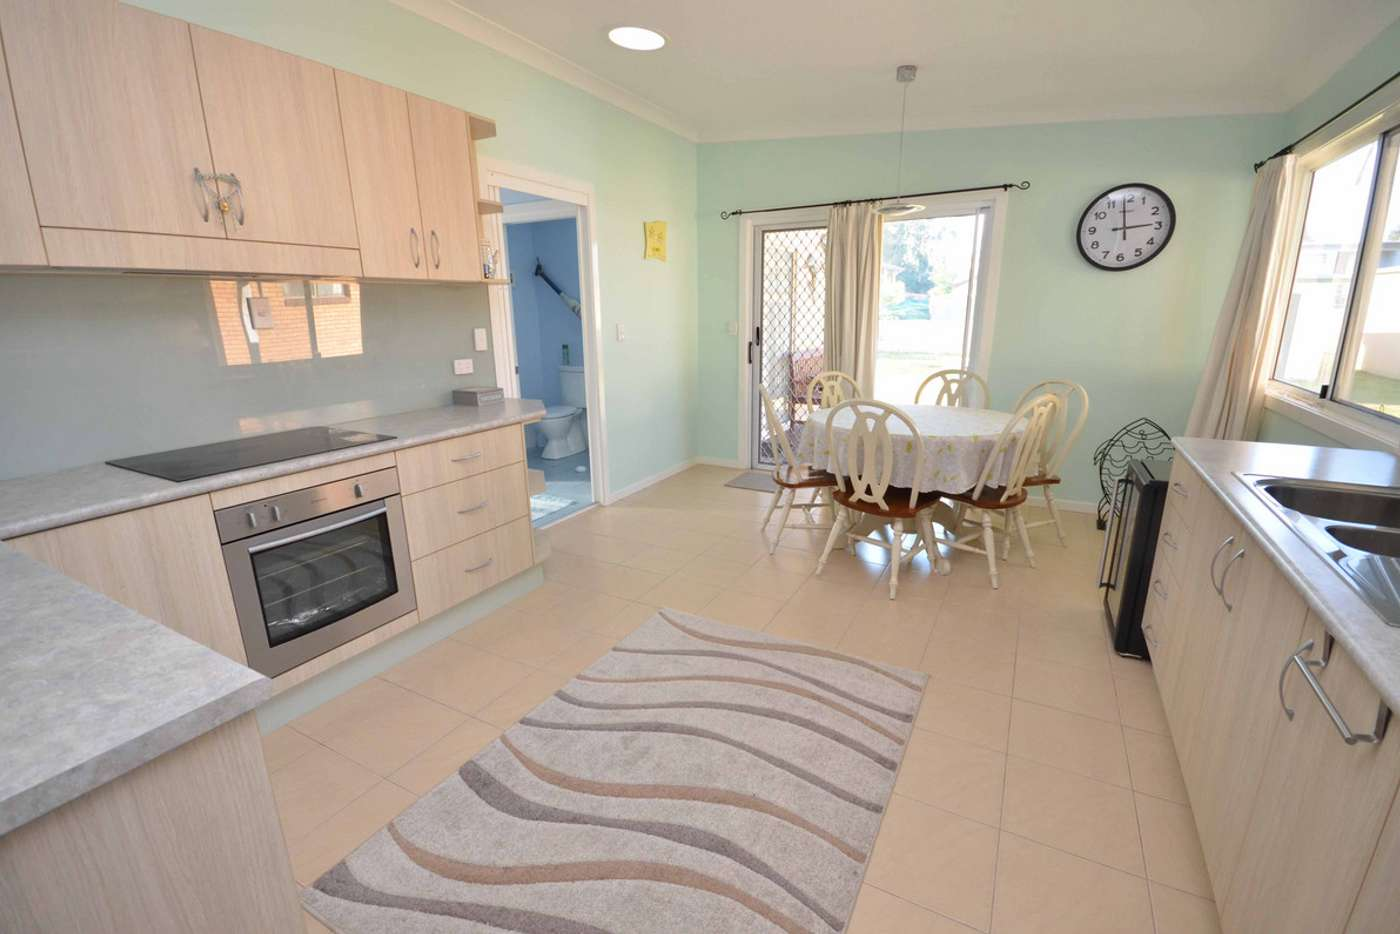 Main view of Homely house listing, 15 Alfred Street, North Haven NSW 2443